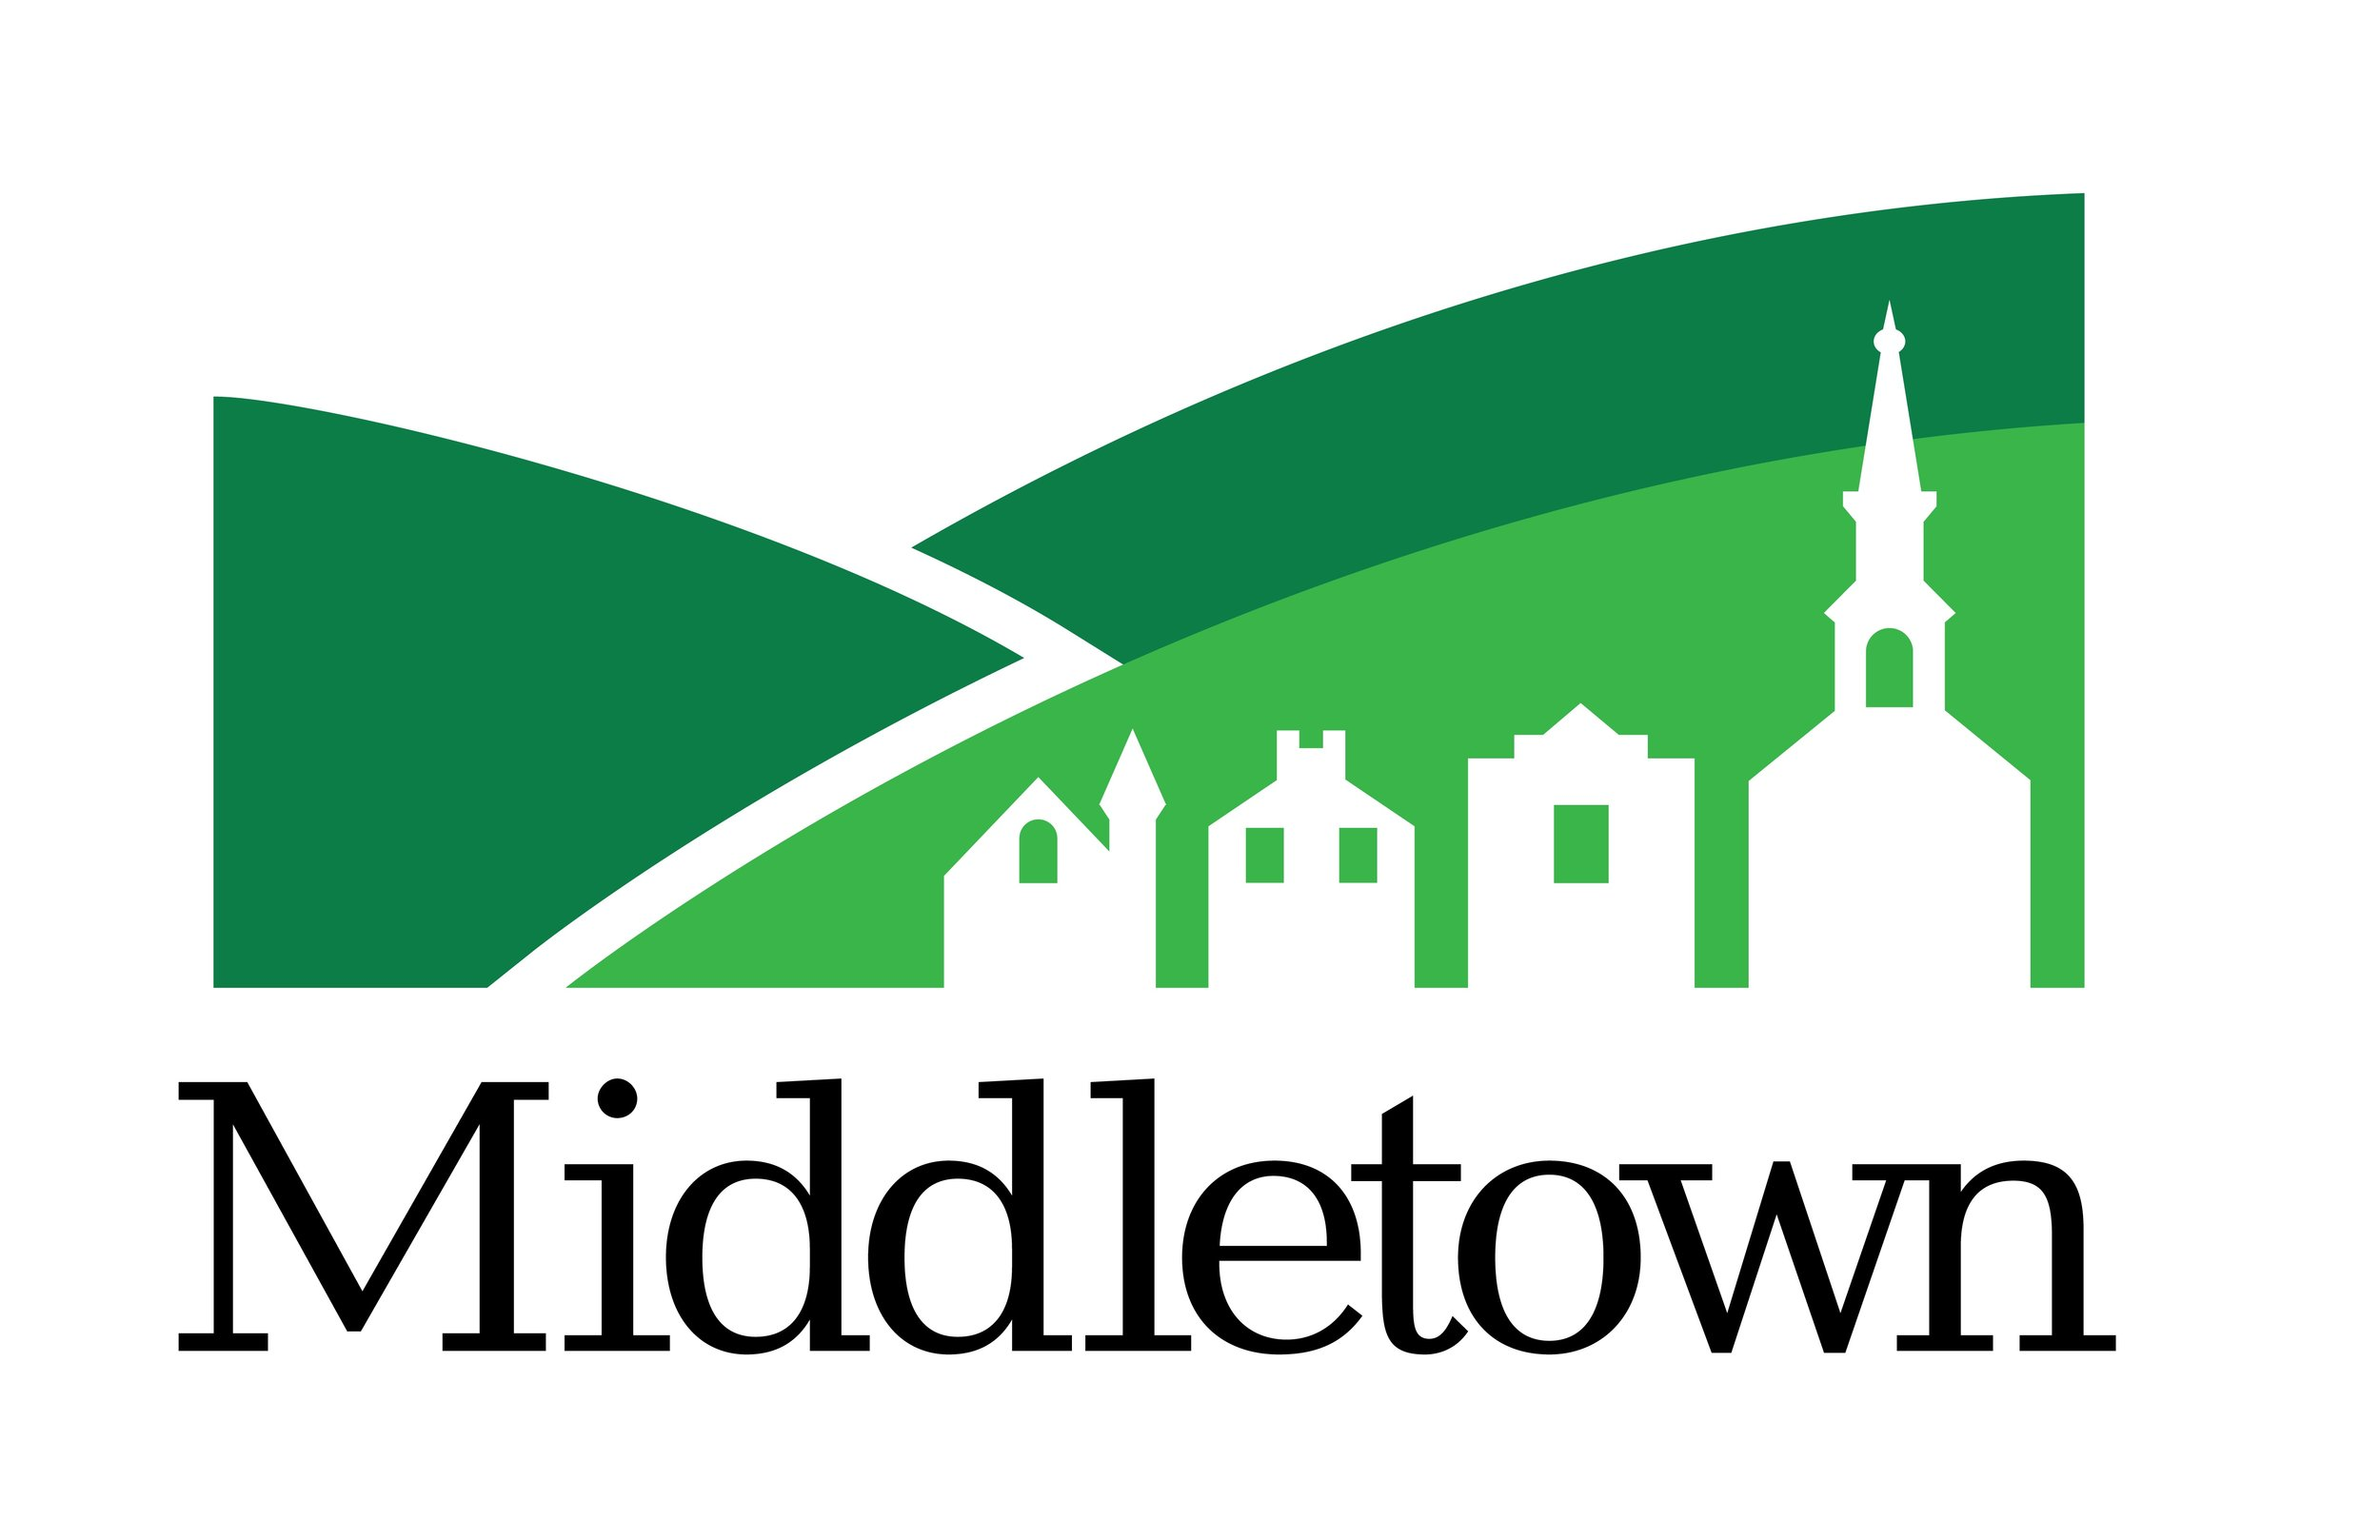 Town of Middletown - The heart of the beautiful Middletown Valley!Middletown Municipal Center, 31 West Main Street, Middletown, MD 21769301-371-6171www.middletown.md.us